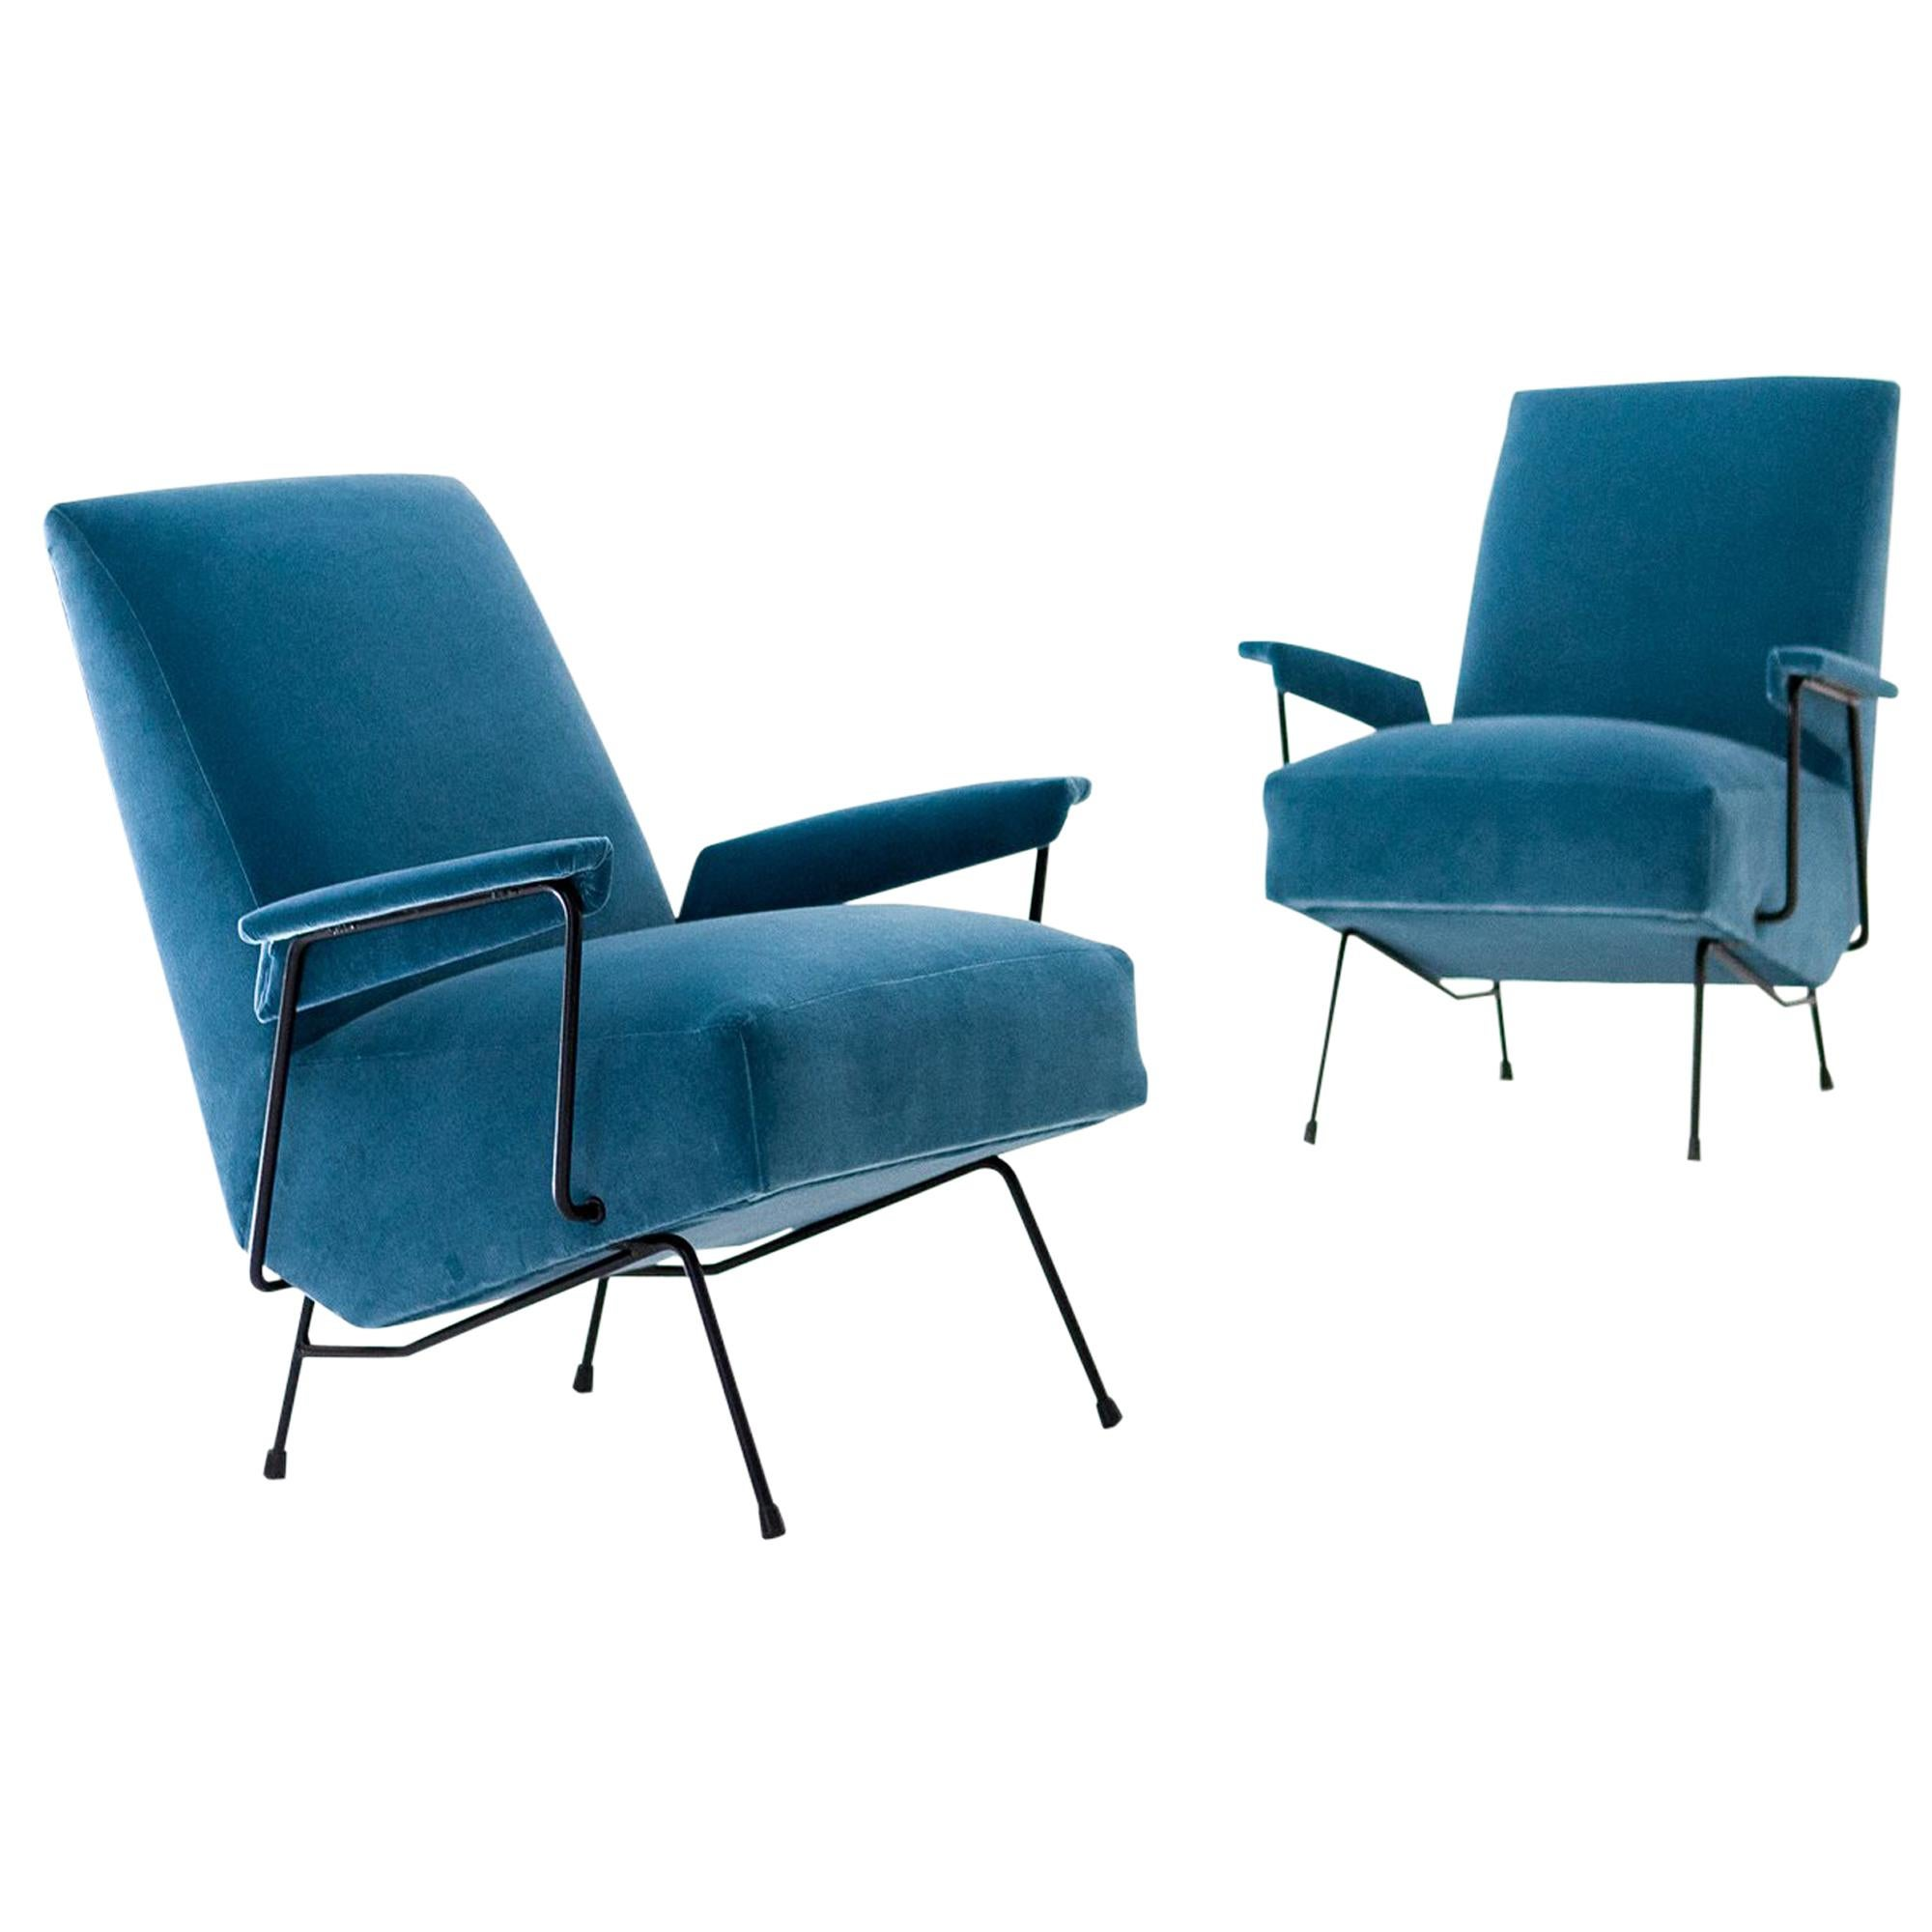 Pair Of Italian Light Blue Velvet And Black Enameled Iron Armchairs, 1950s  For Sale